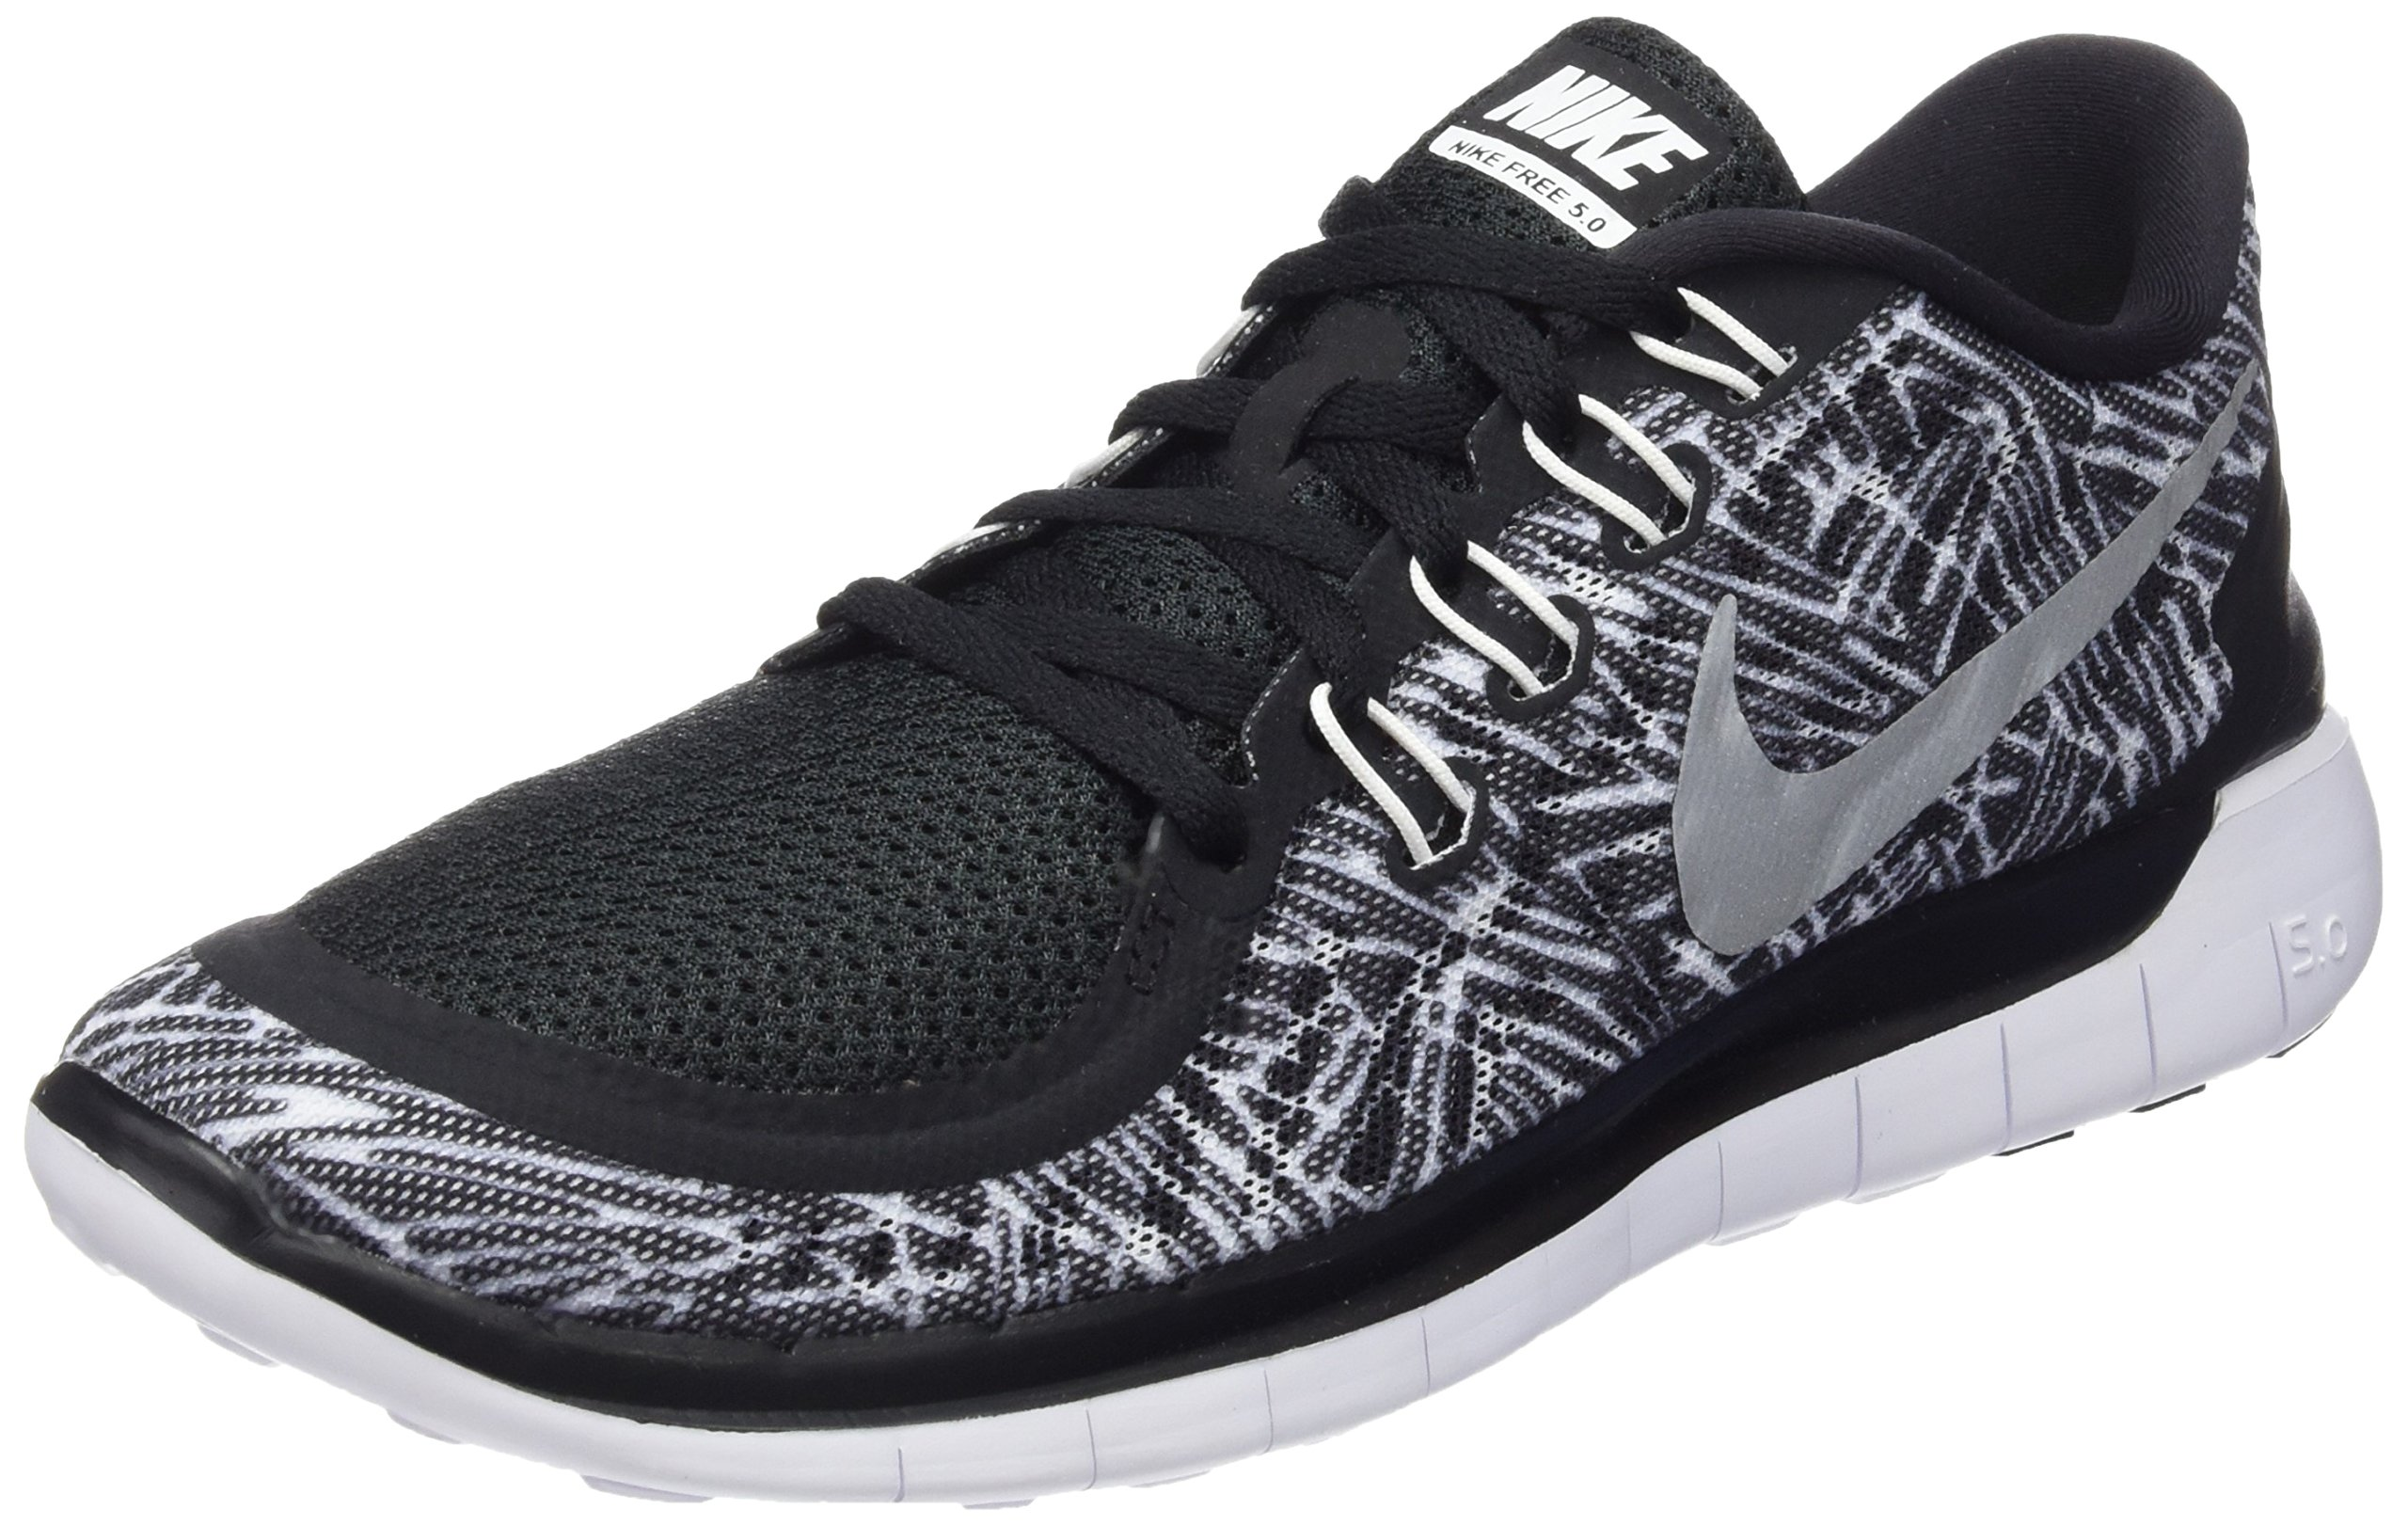 a611b798abe4 Galleon - Nike Women s Free 5.0 Print Black White White Running Shoe 9.5  Women US